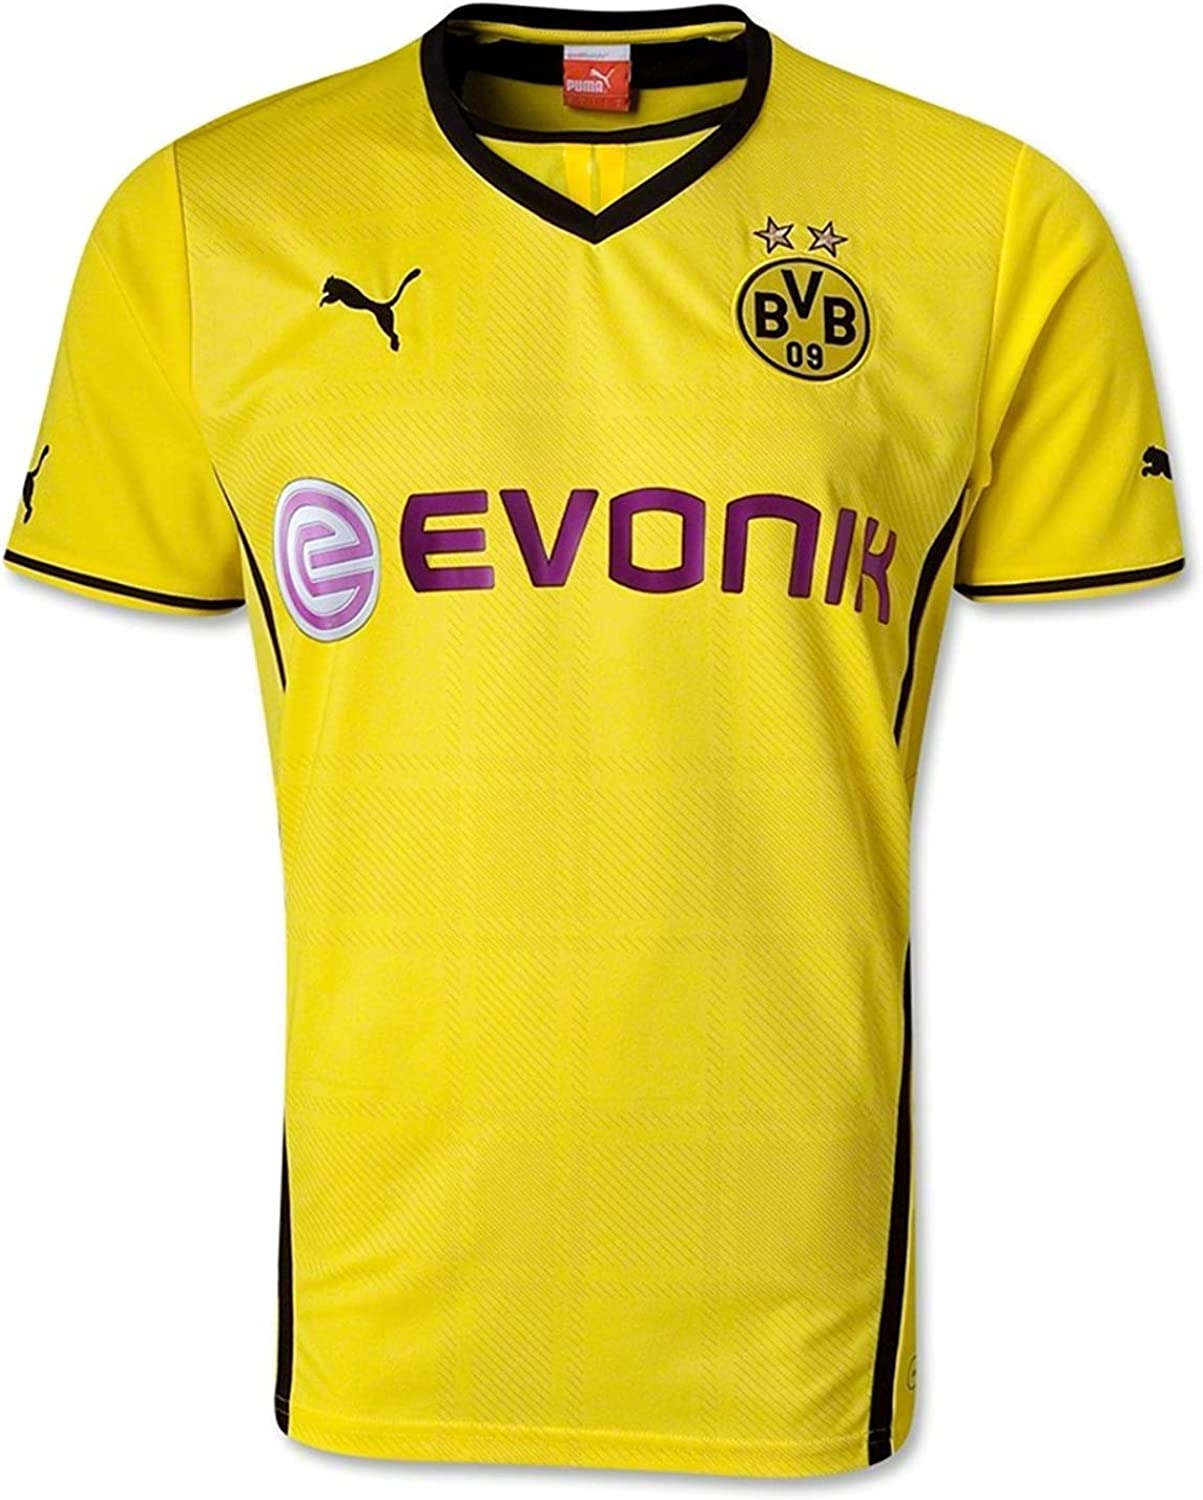 Amazon Com Puma Bvb Home Replica Shirt Blazing Yellow Black Xxl Sports Fan Jerseys Clothing